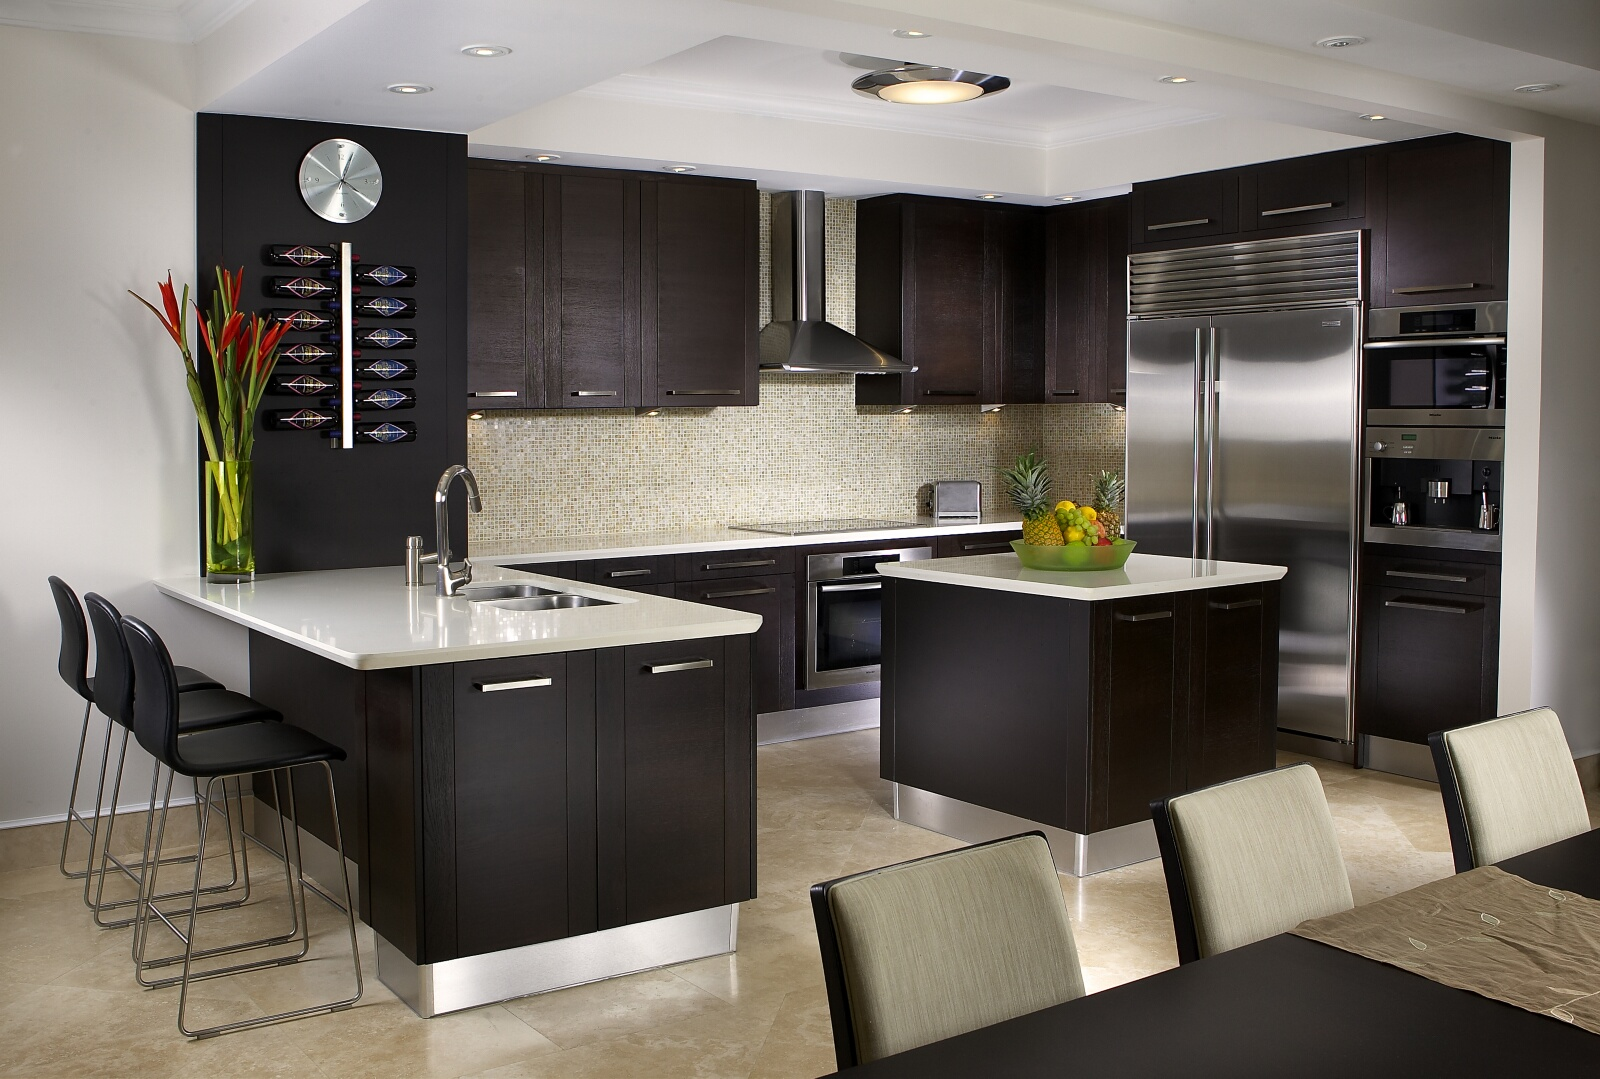 6 - Interior Designer Kitchens